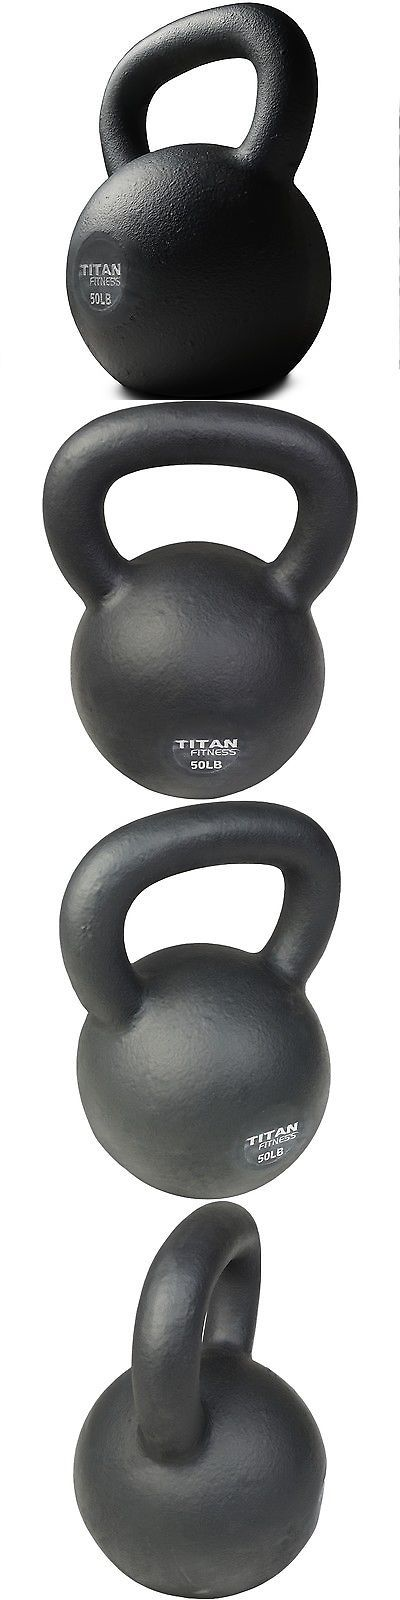 Kettlebells 179814: Cast Iron Kettlebell Weight 50 Lb Natural Solid Titan Fitness Workout Swing -> BUY IT NOW ONLY: $69 on eBay!